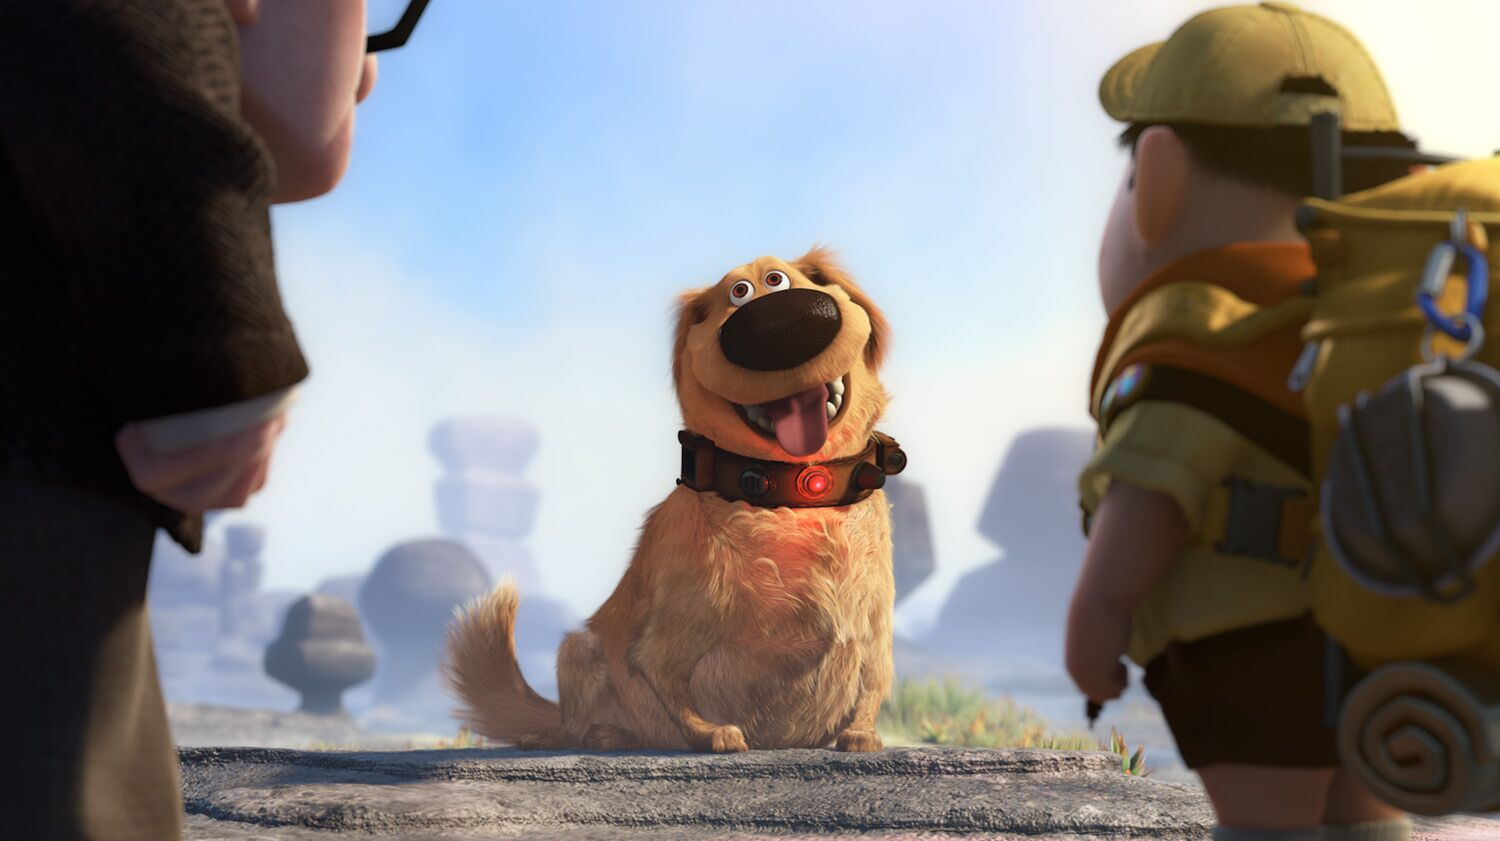 15 of the most memorable and lovable Pixar side characters ranked